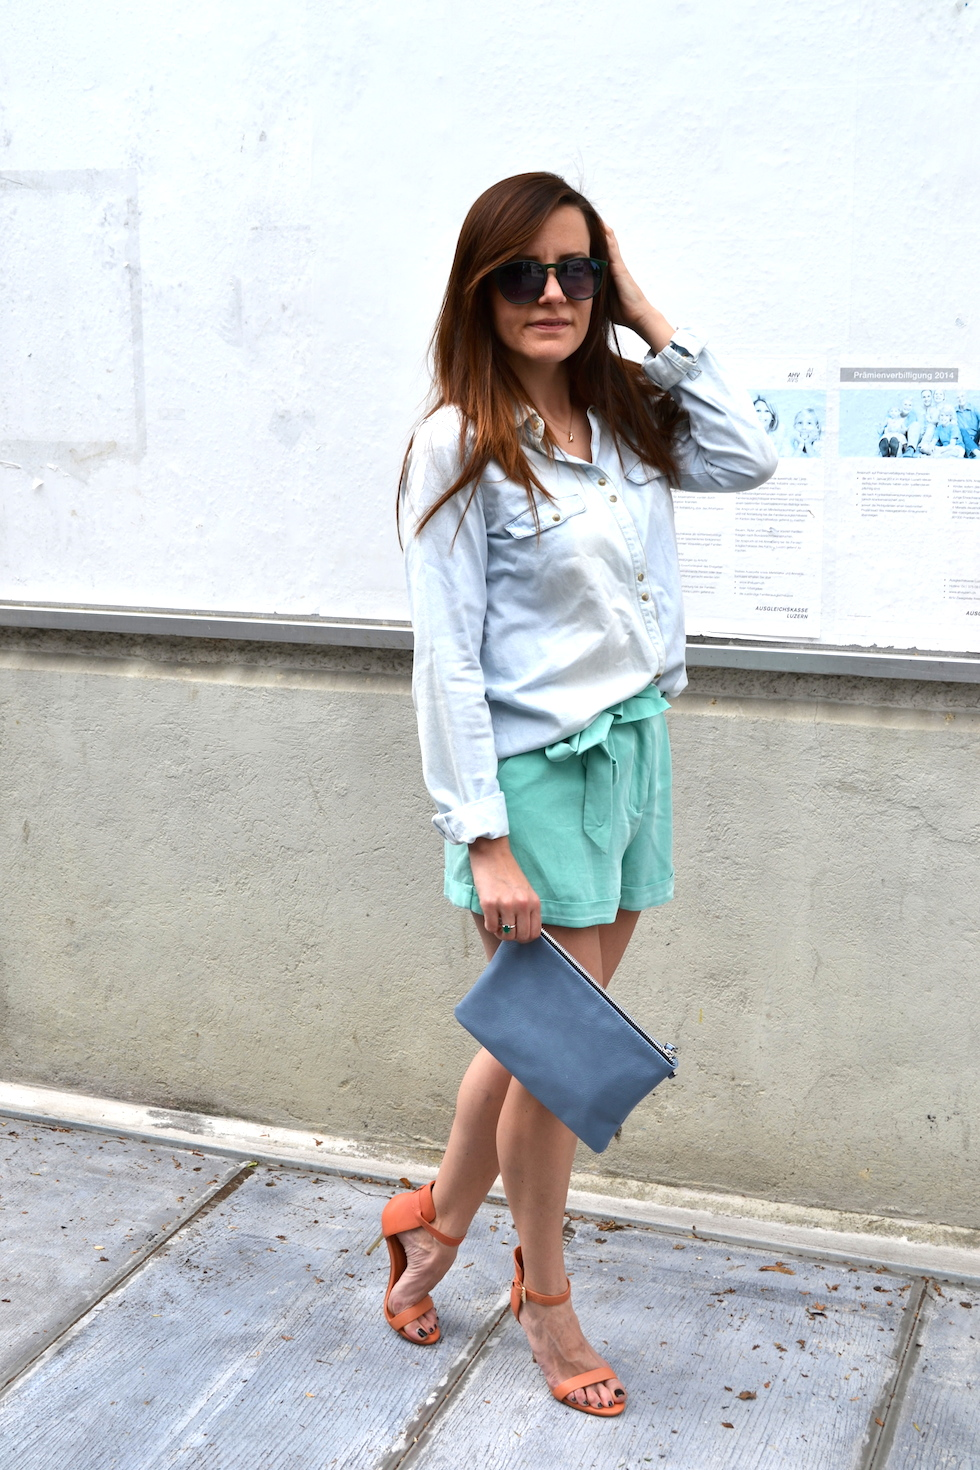 summery outfit in pastel colors, fashionblogger switzerland